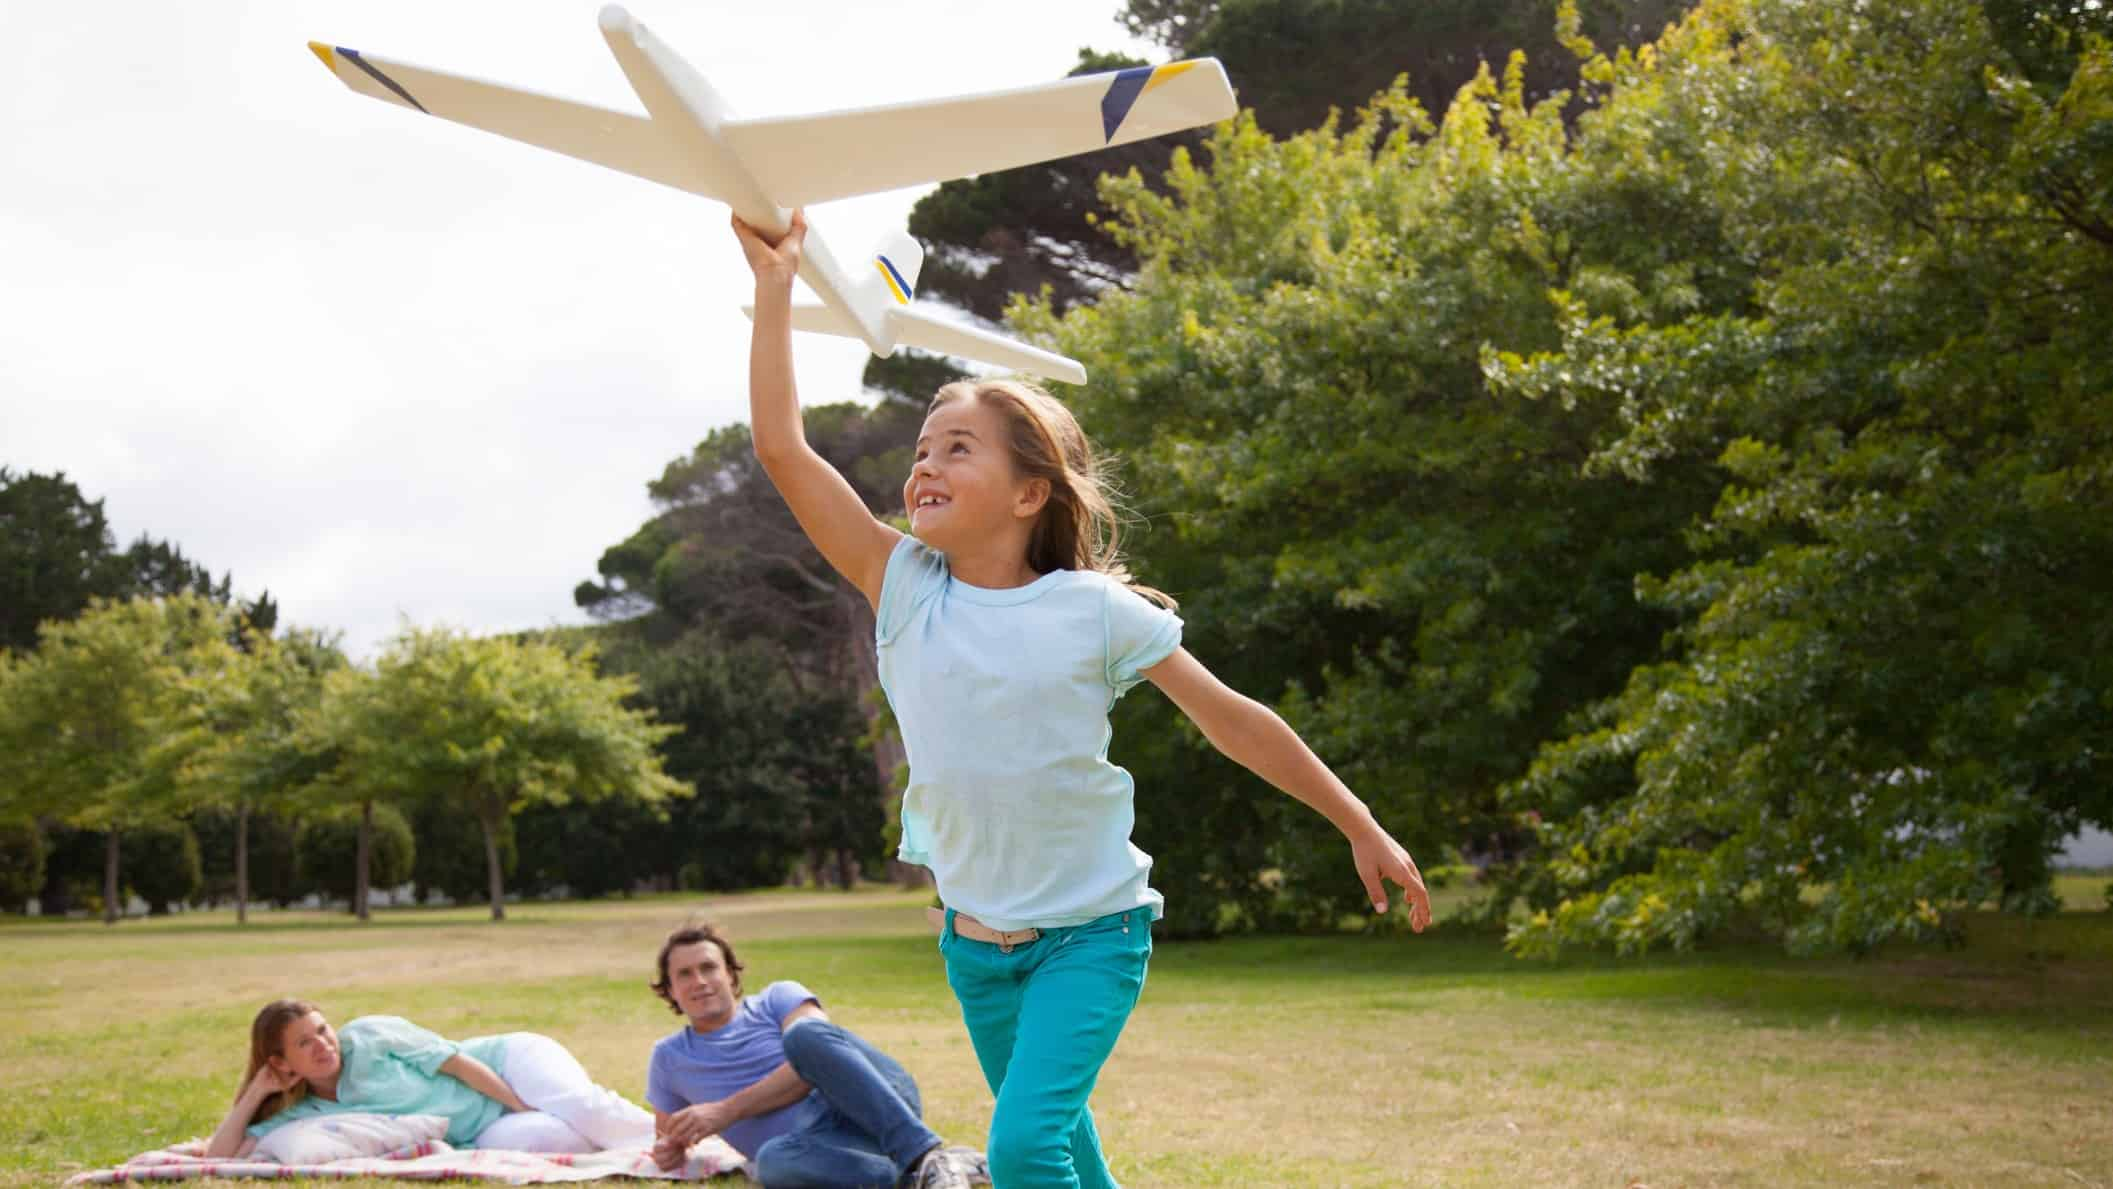 A girl runs with model plane in a park with her parents in the background lying on the grass watching her.